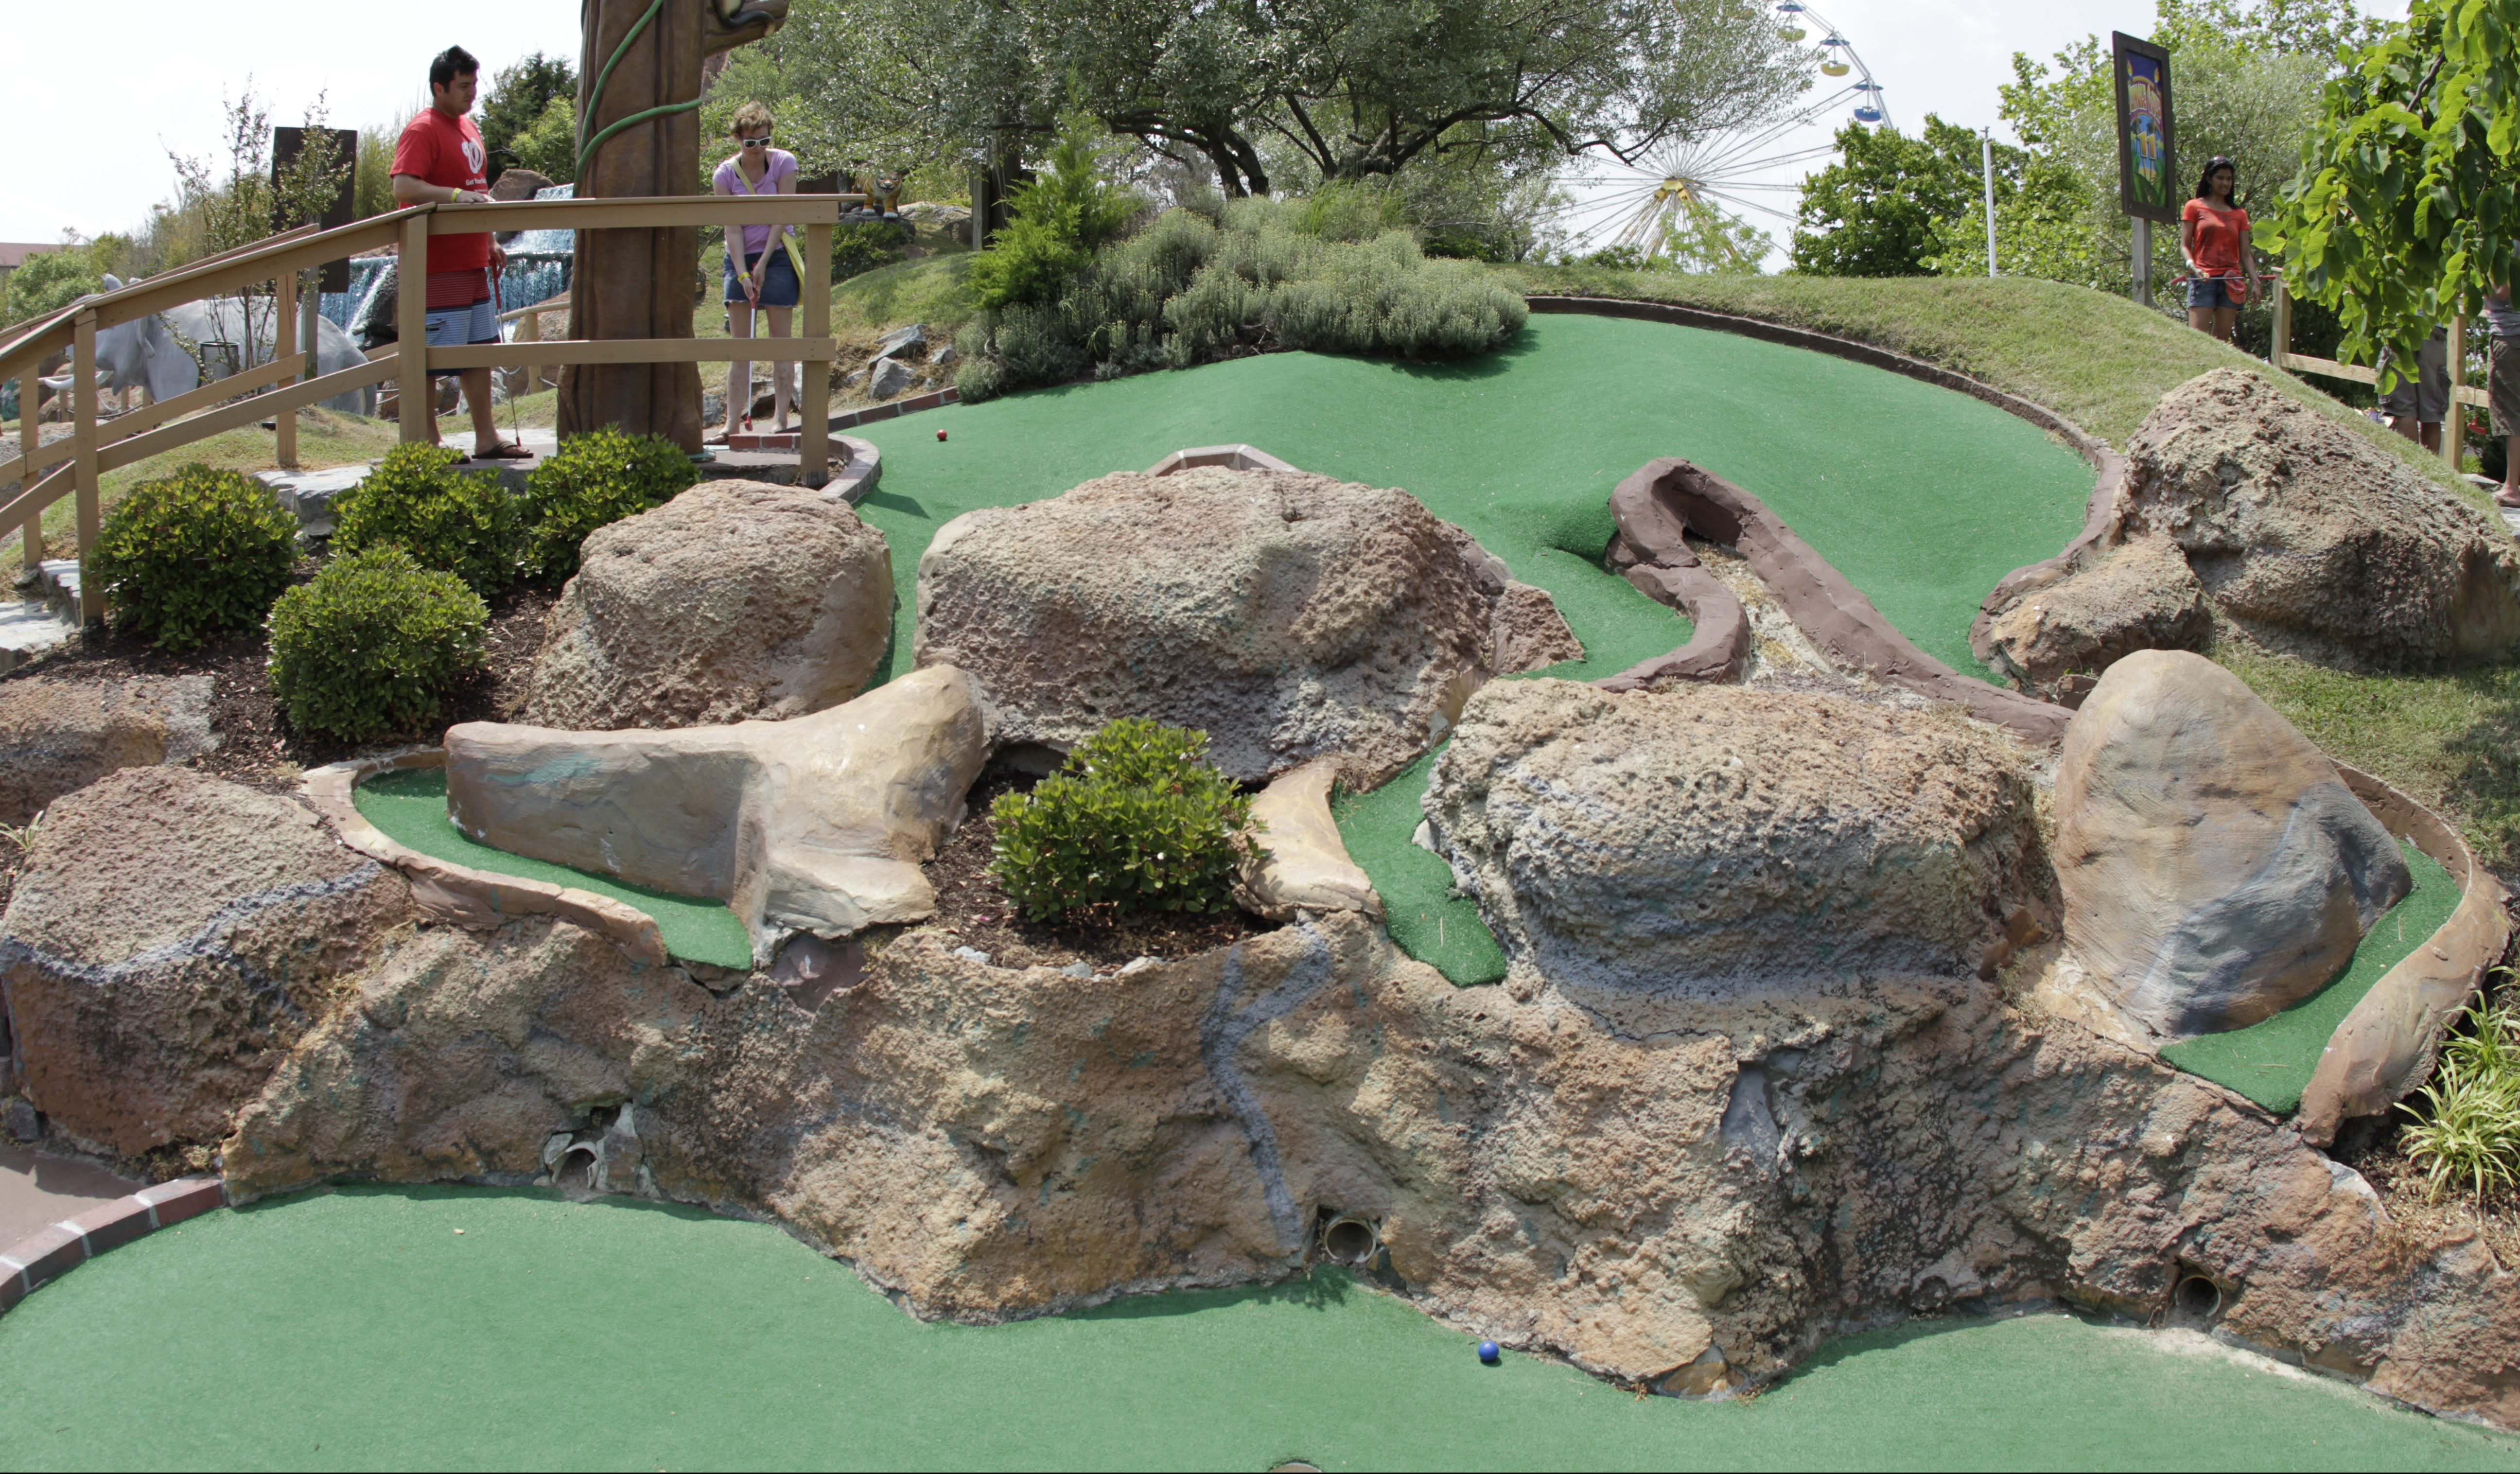 green turf grass on a miniature golf course with boulders and rope walk